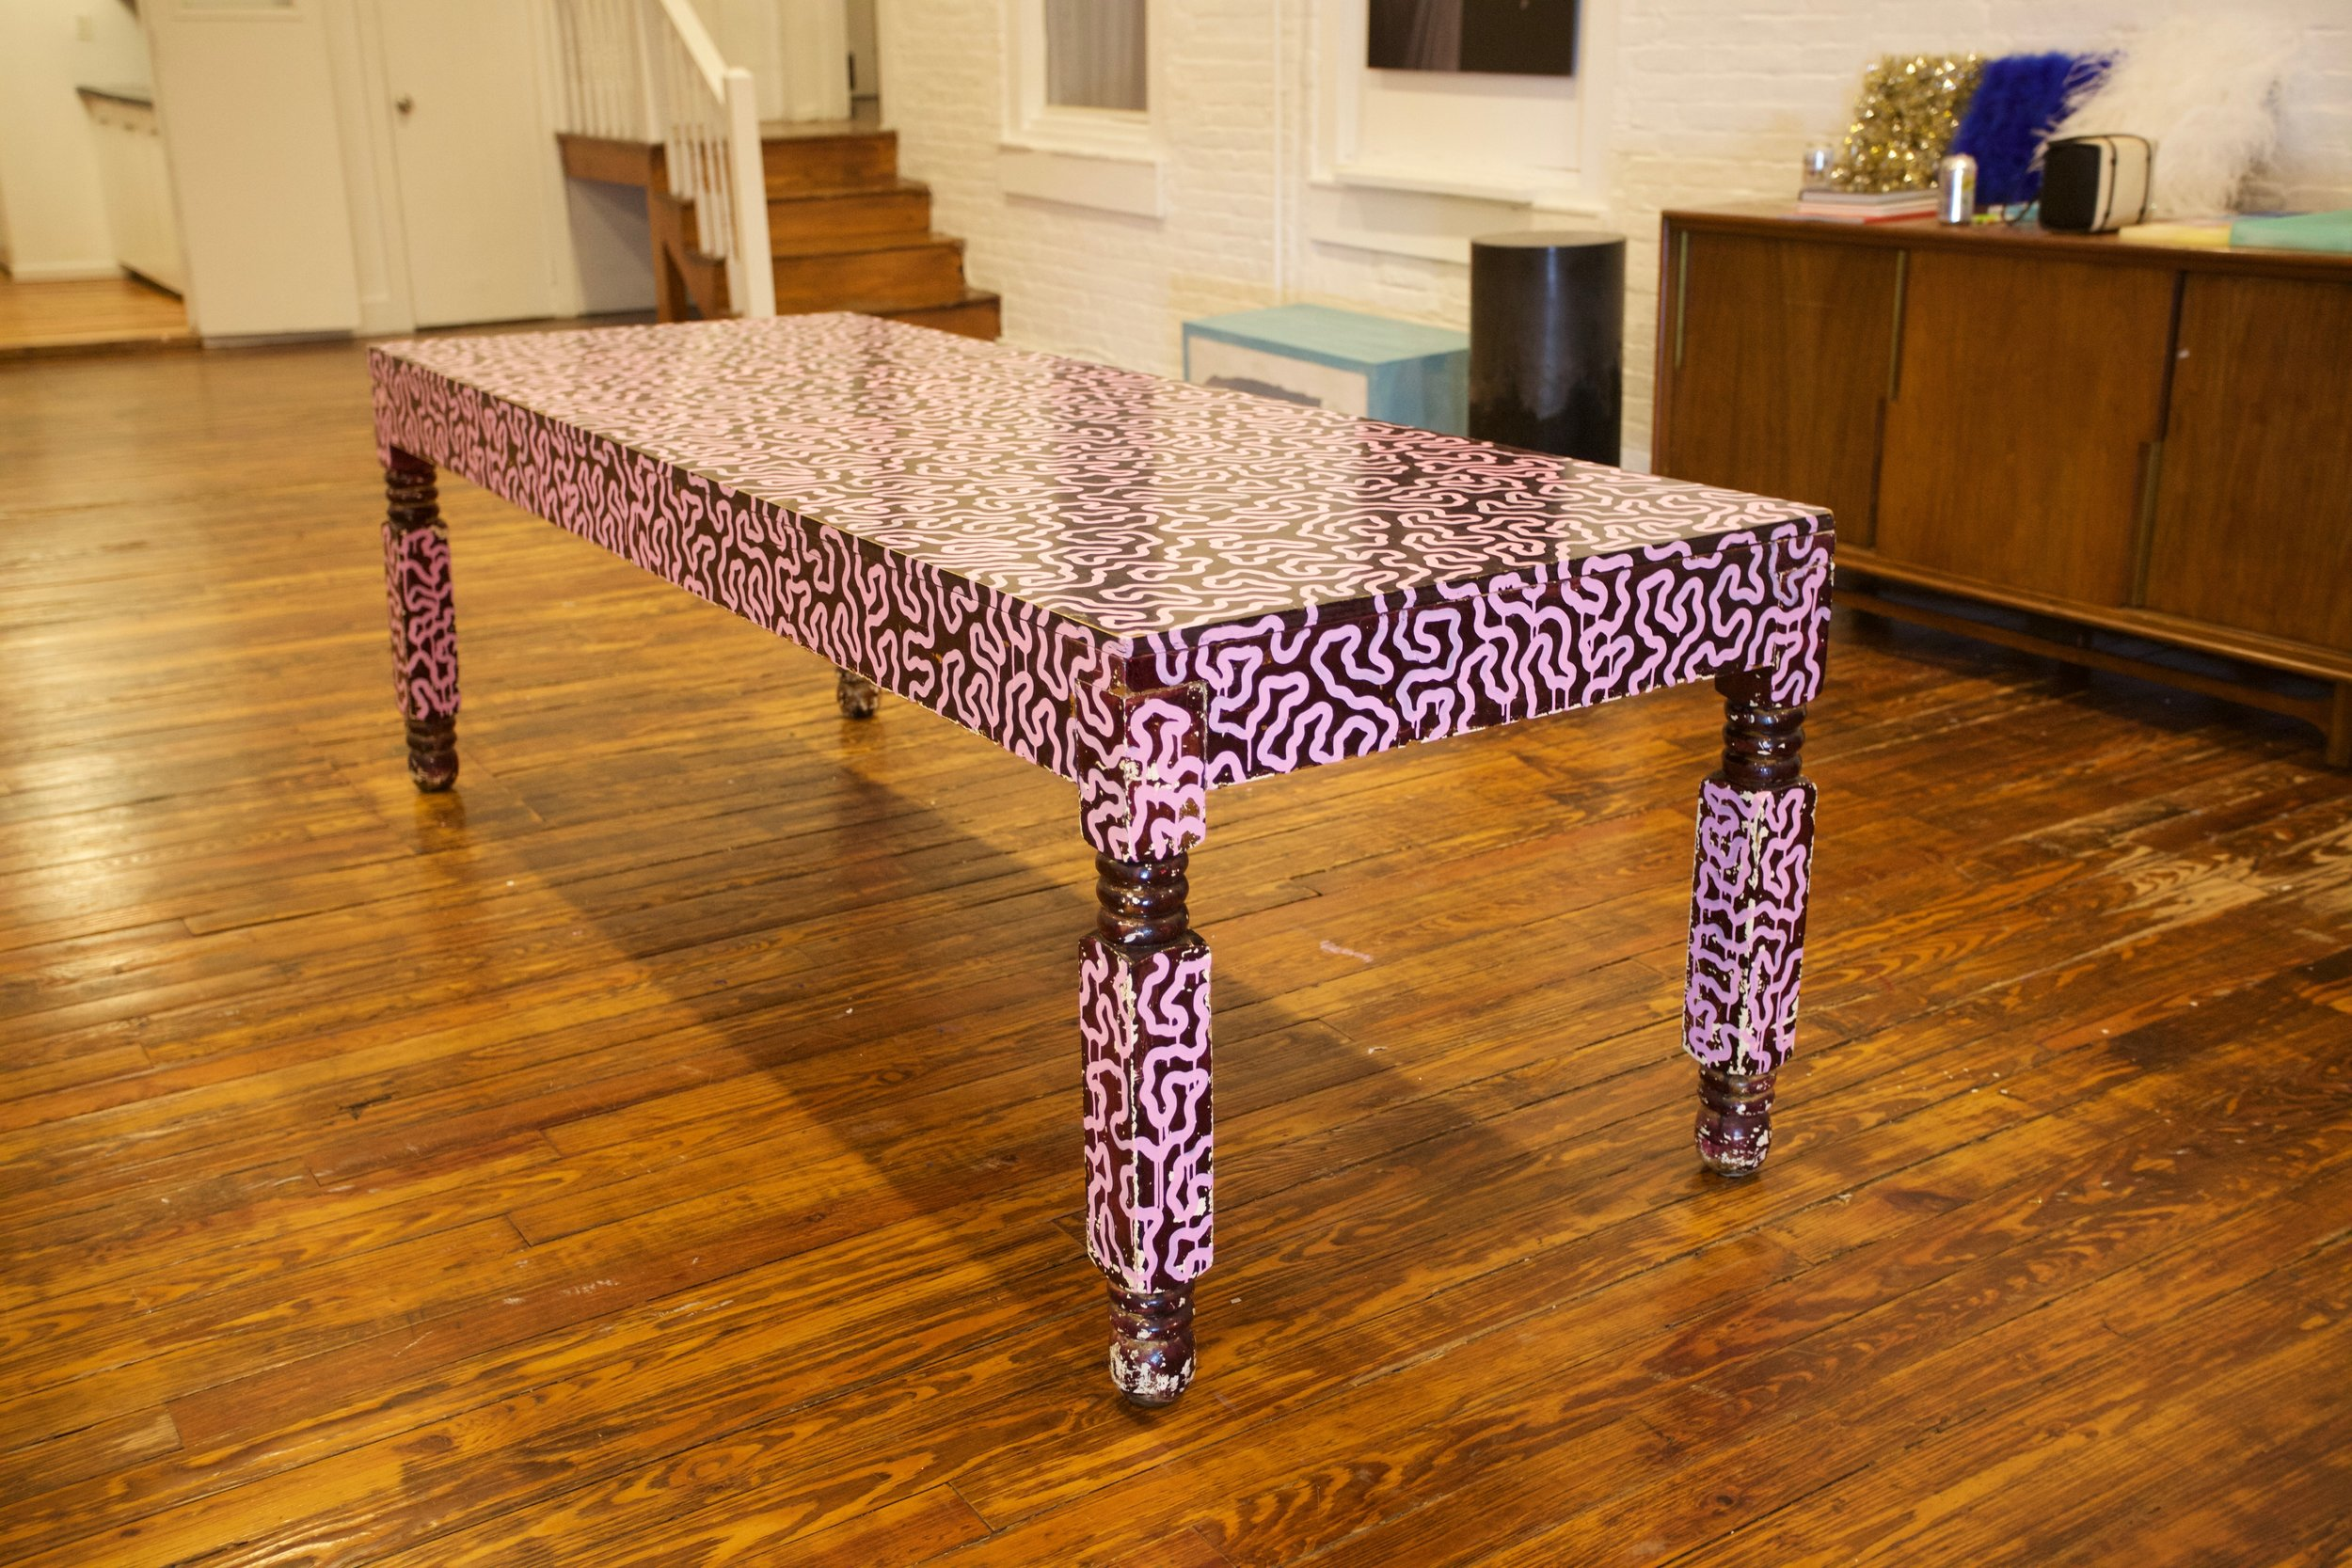 Hand painted table, 2018